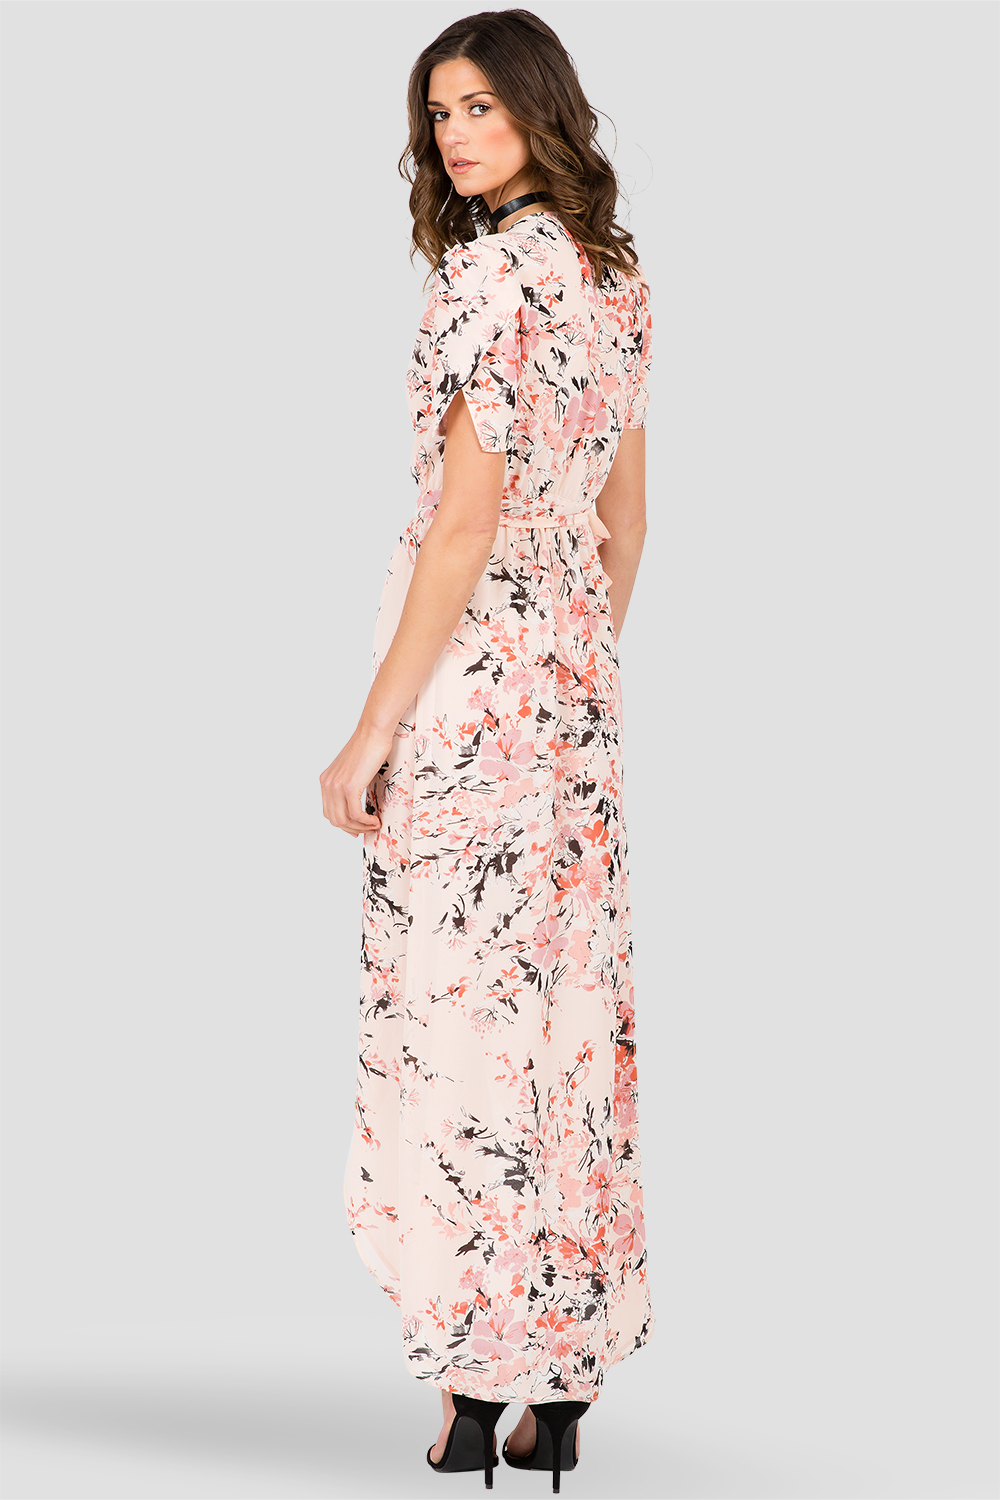 Peach & Pink Floral Print Short-Sleeve Maxi Wrap Dress